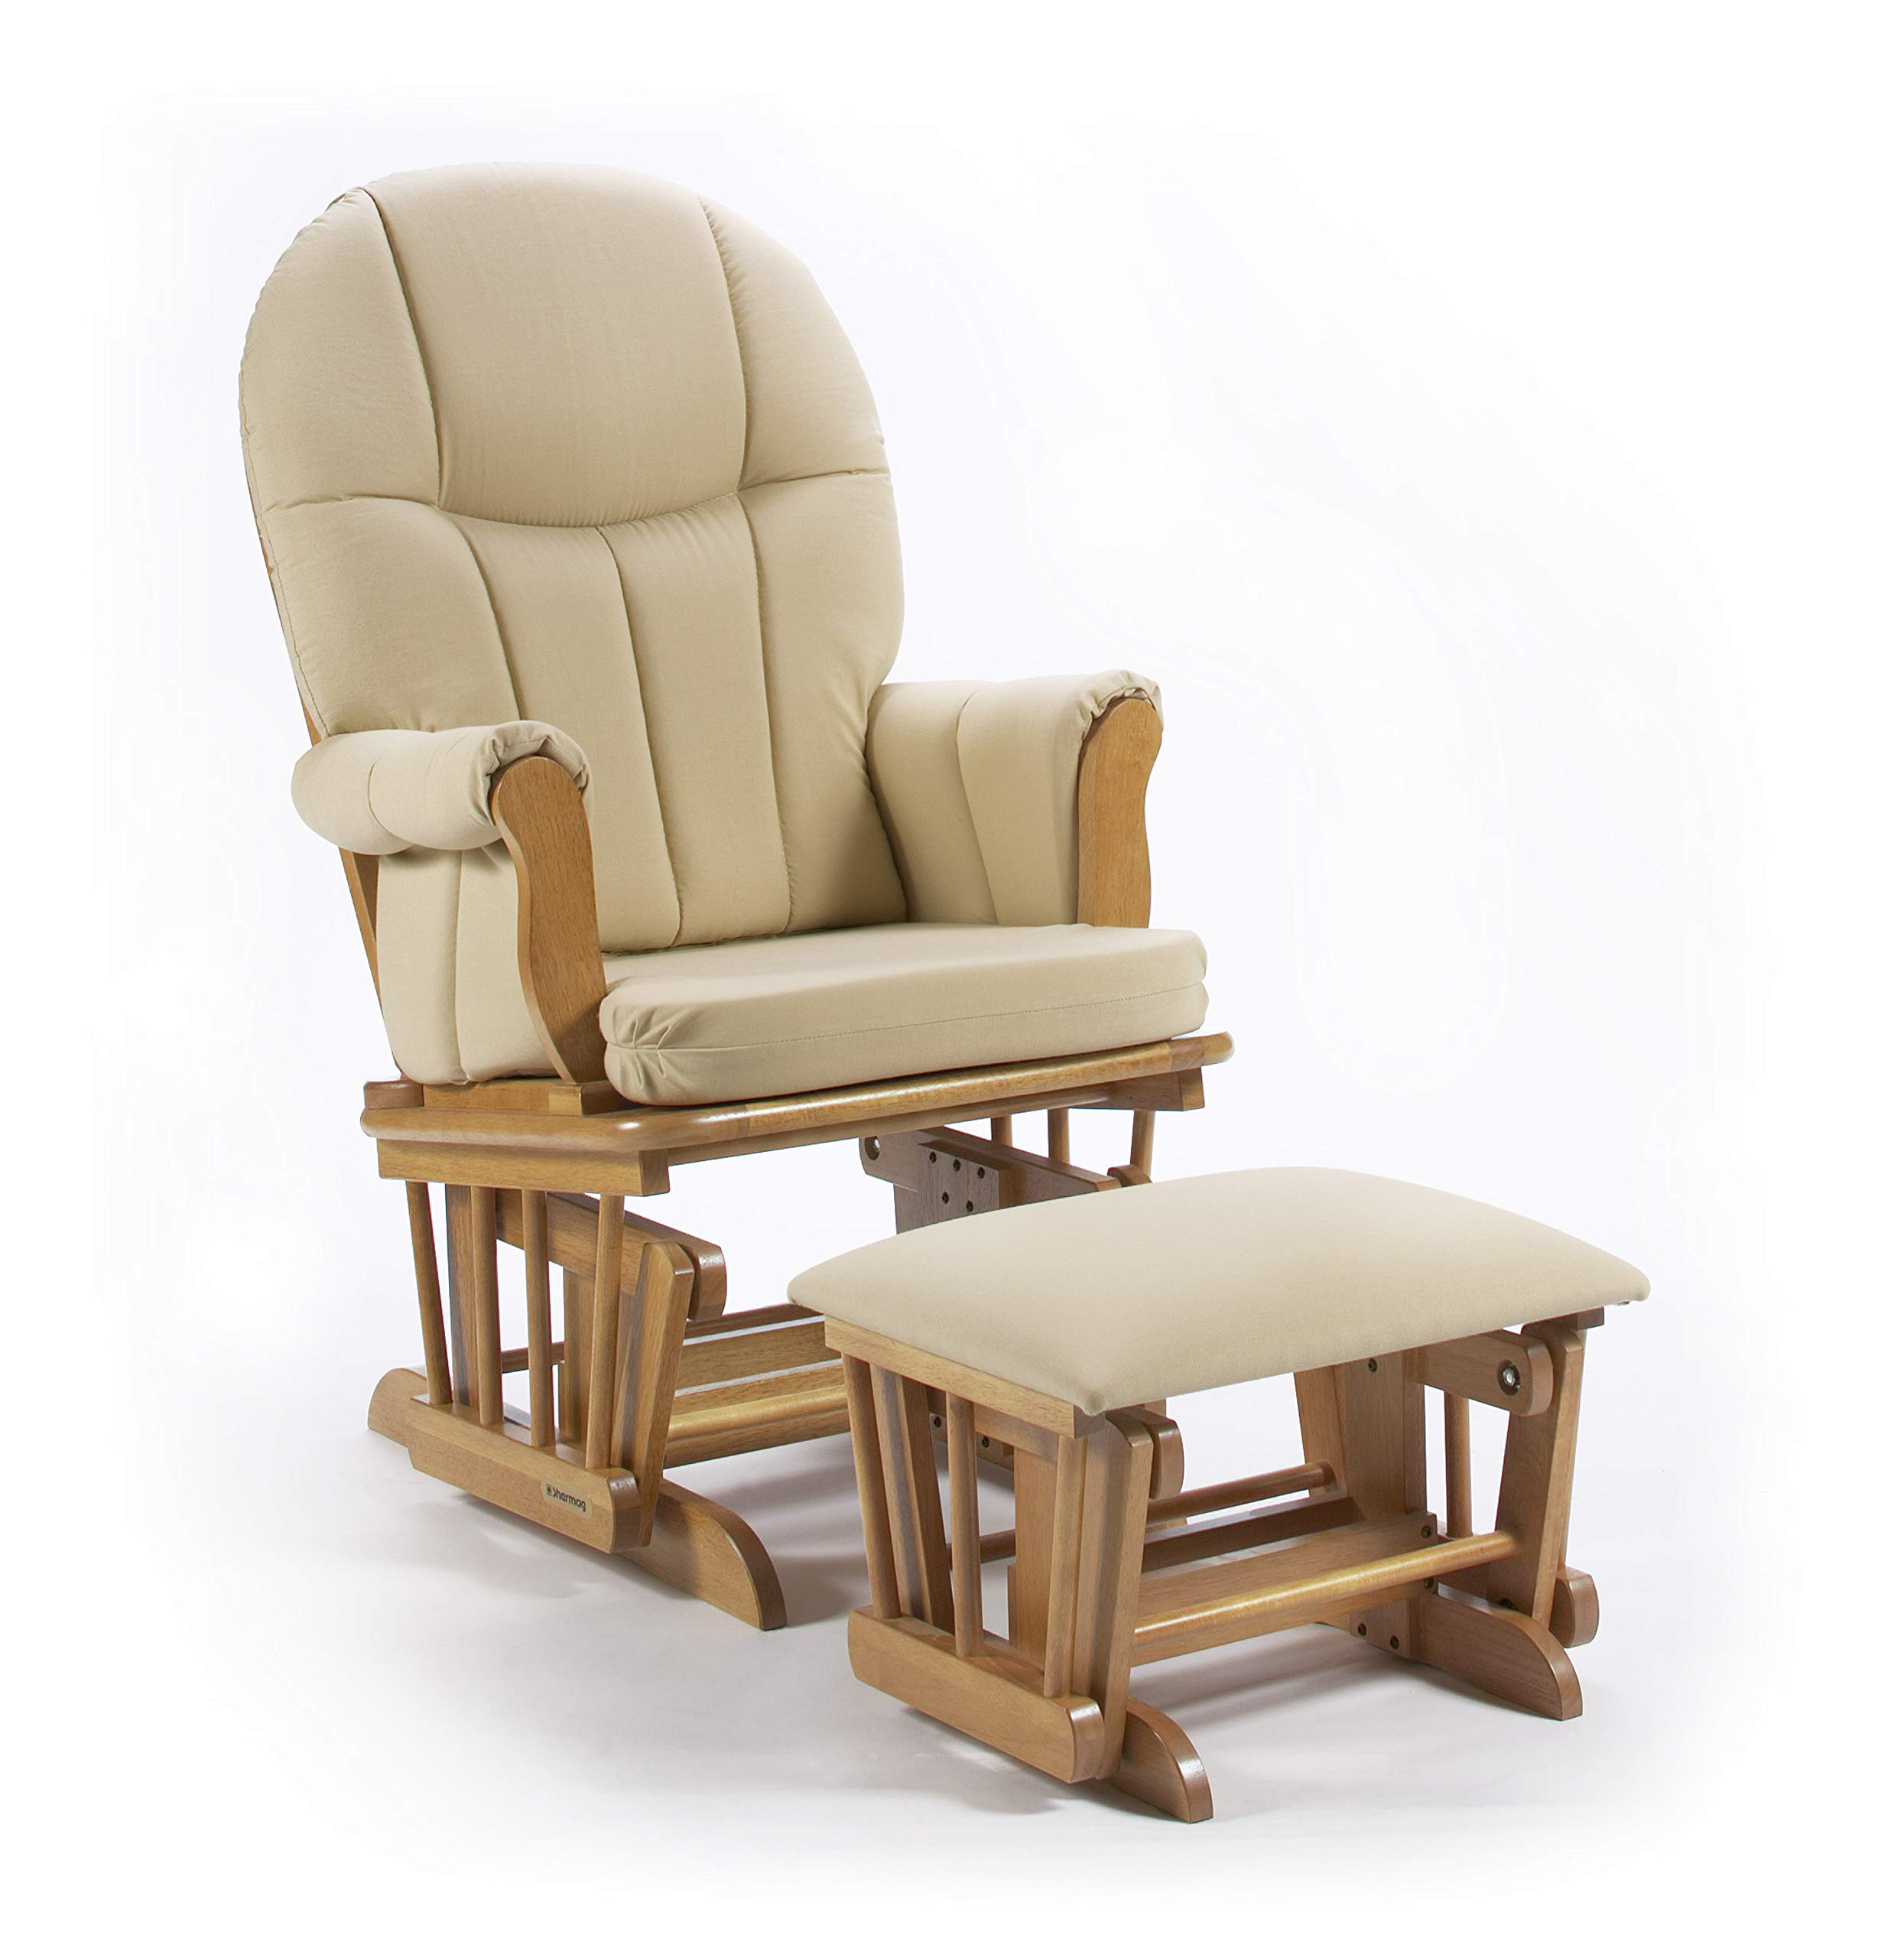 Lennox Furniture Dallas Glider Chair and Ottoman Combo, Honey with Wheat